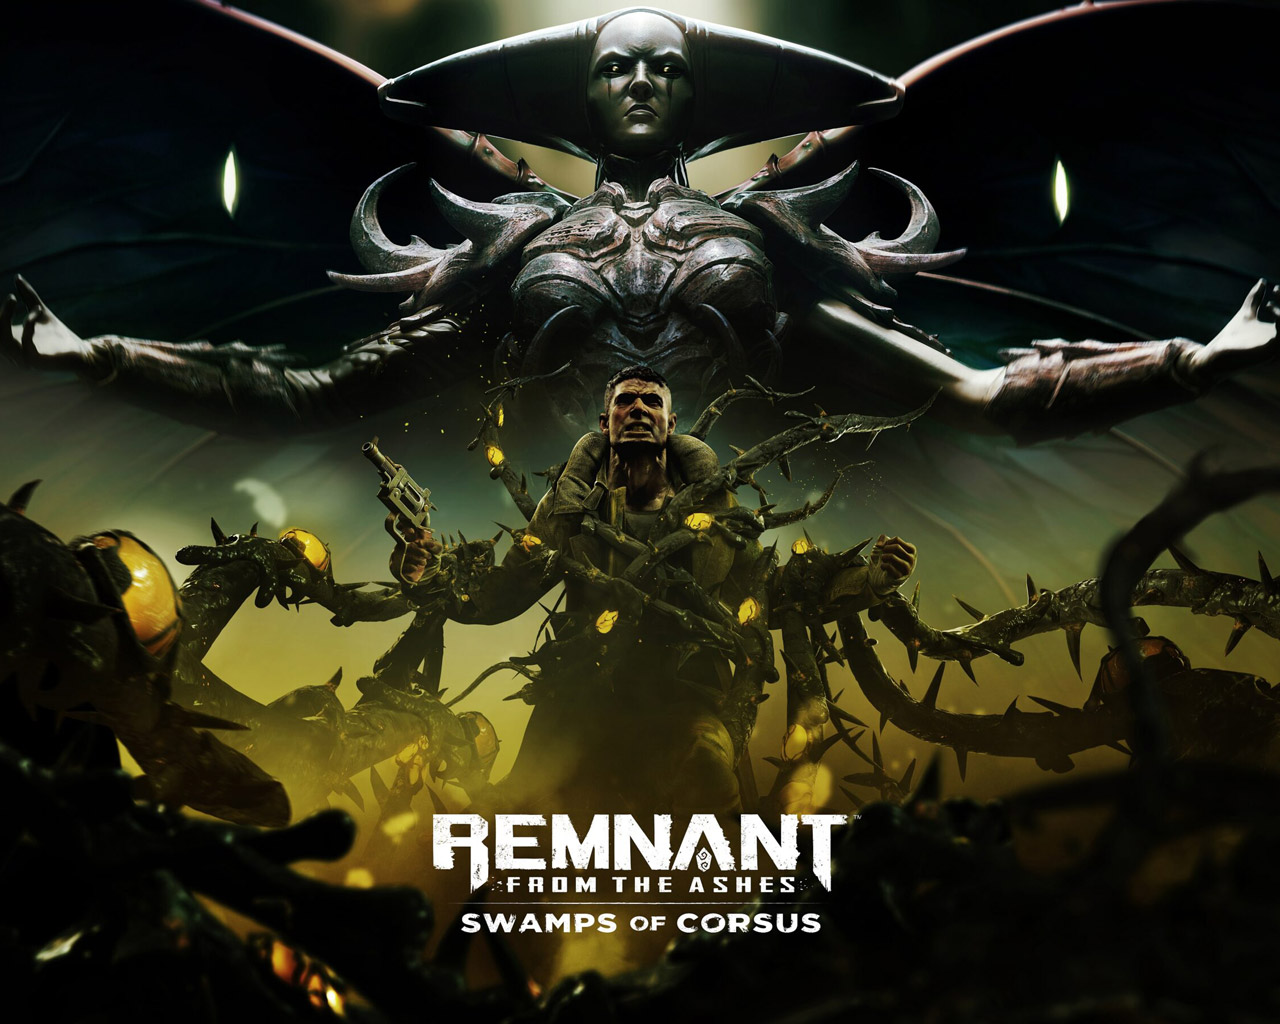 Remnant: From the Ashes Wallpaper in 1280x1024